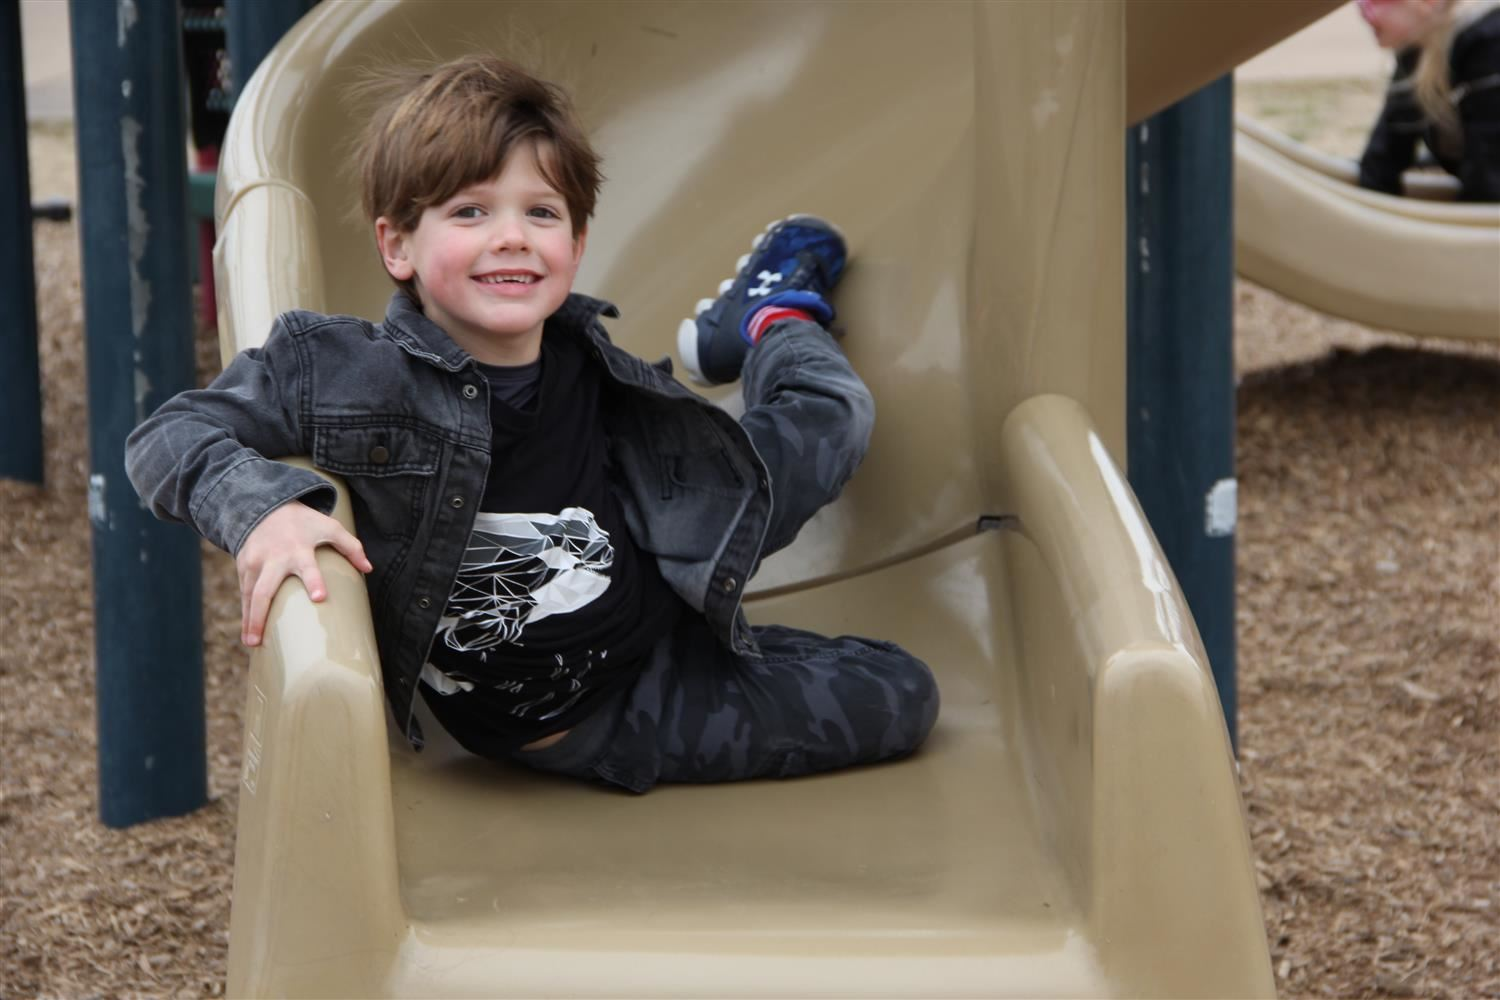 male GFES student enjoys some time on the slide